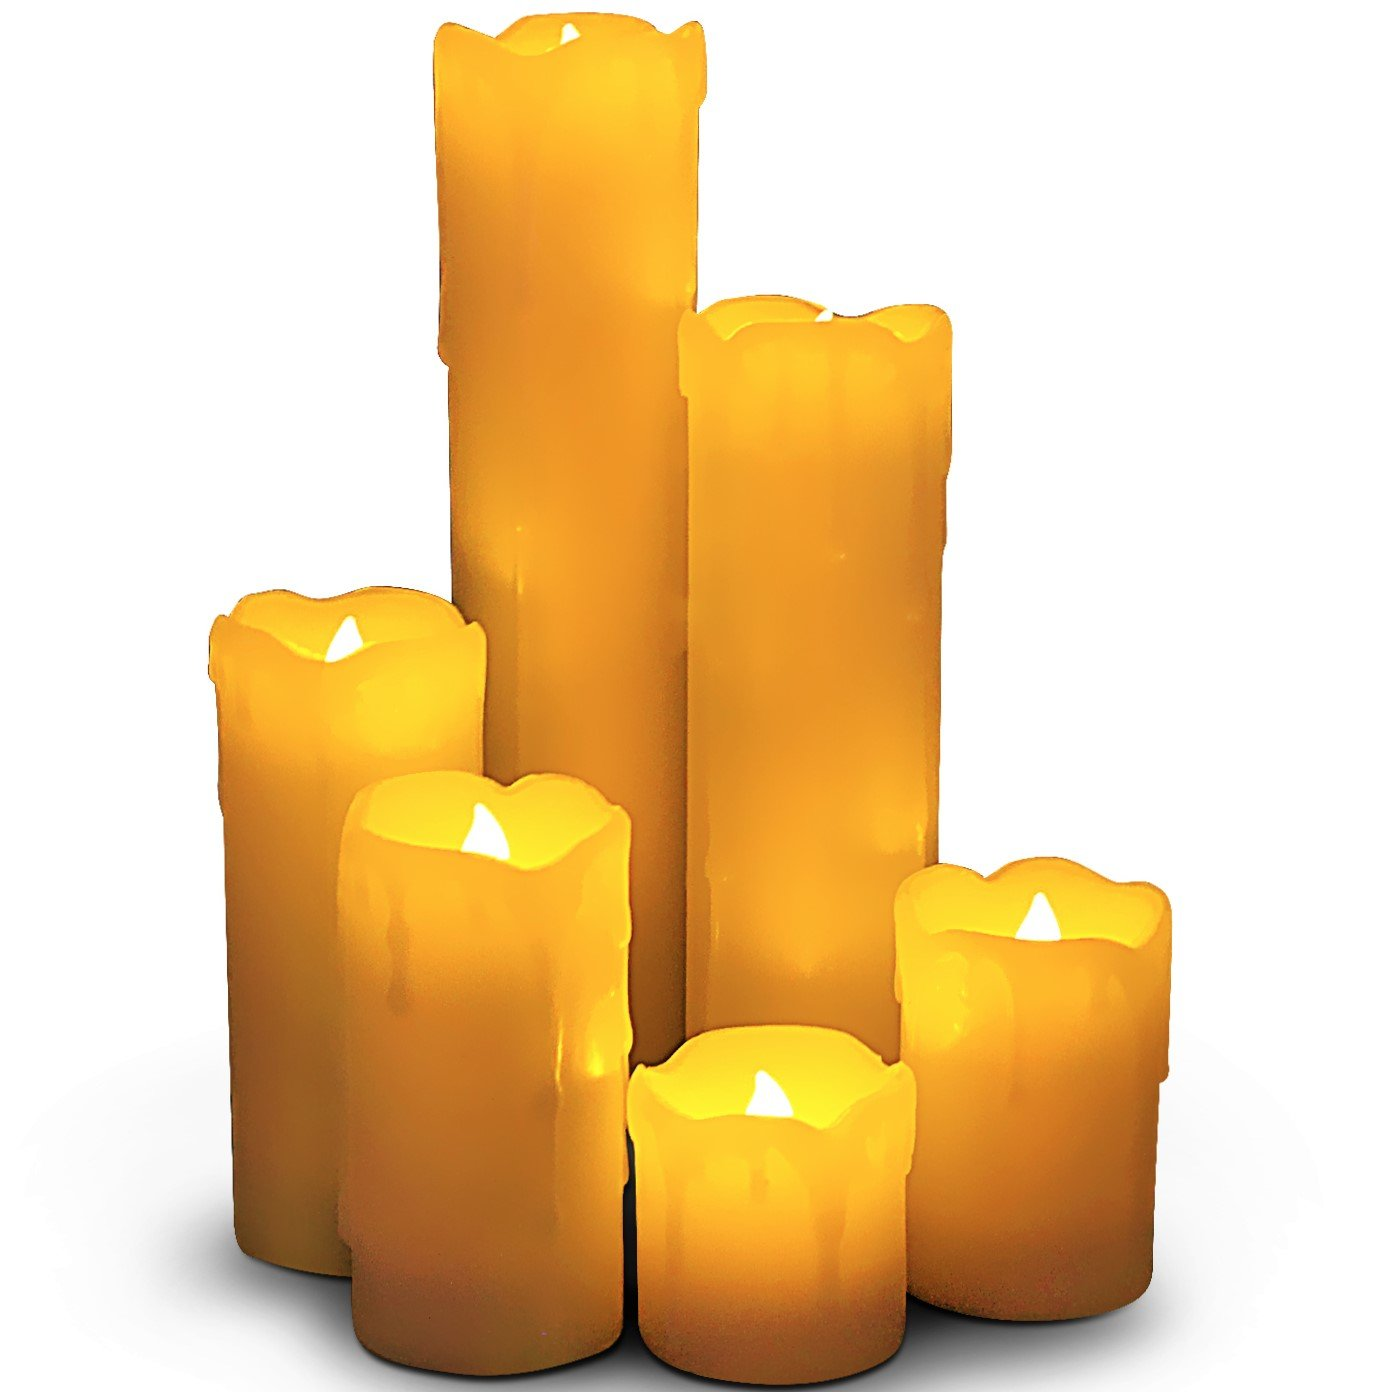 LED Lytes Timer LED Candles - Slim Set of 6, 2'' Wide and 2''- 9'' Tall, Ivory dripping Wax and Flickering Amber Yellow Flame Battery Operated Electric Candle